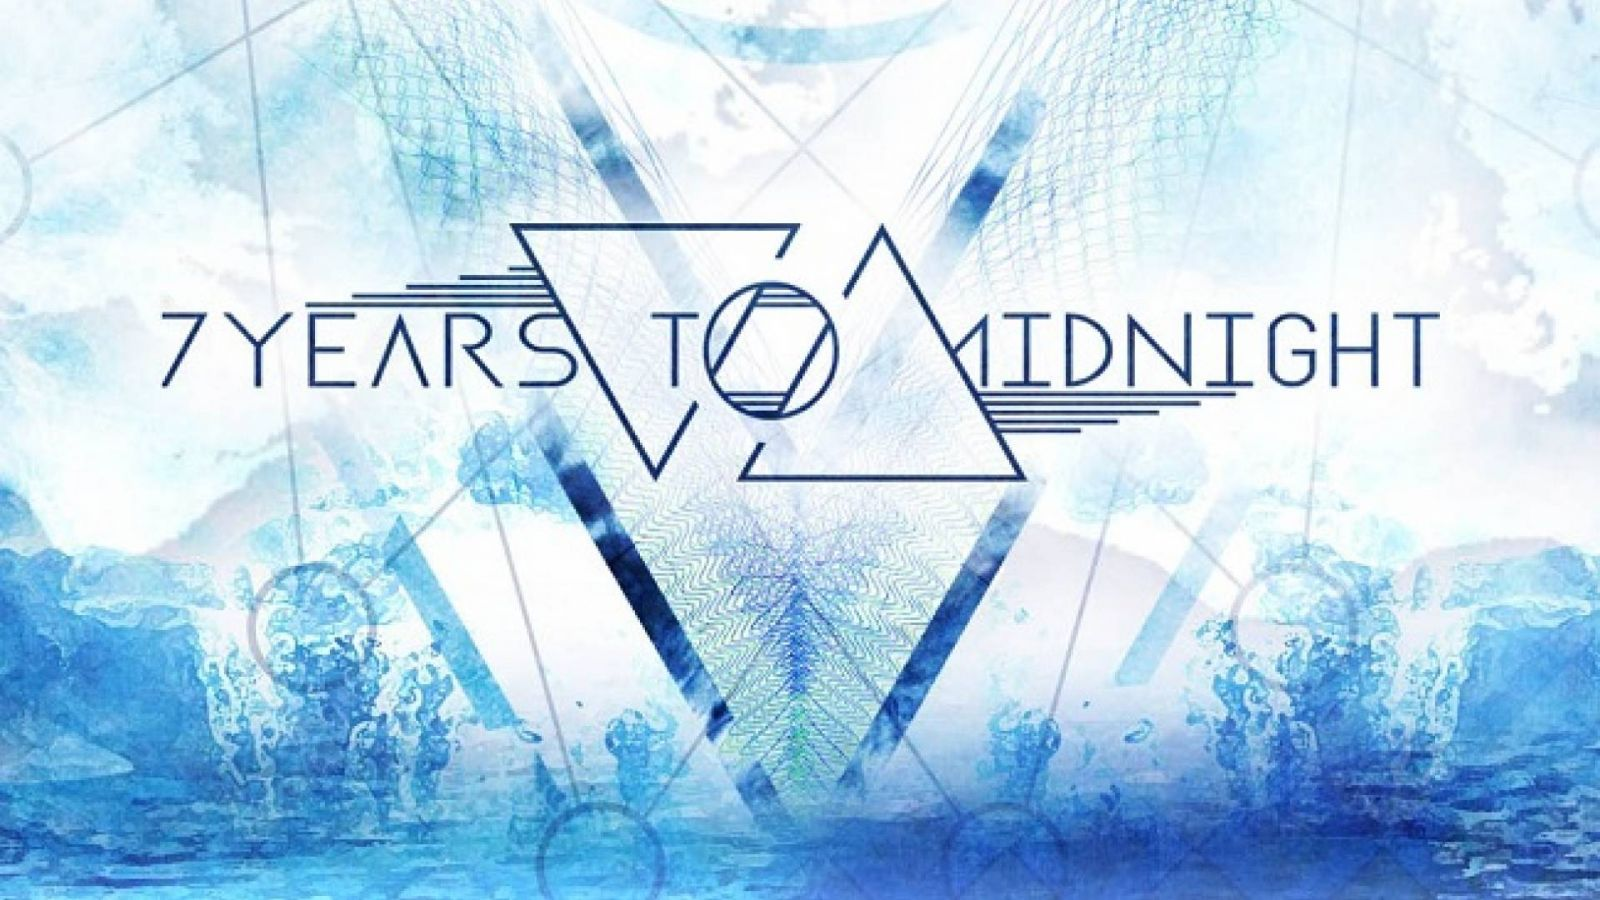 Neues Mini-Album von 7YEARS TO MIDNIGHT © 7YEARS TO MIDNIGHT. All Rights Reserved.